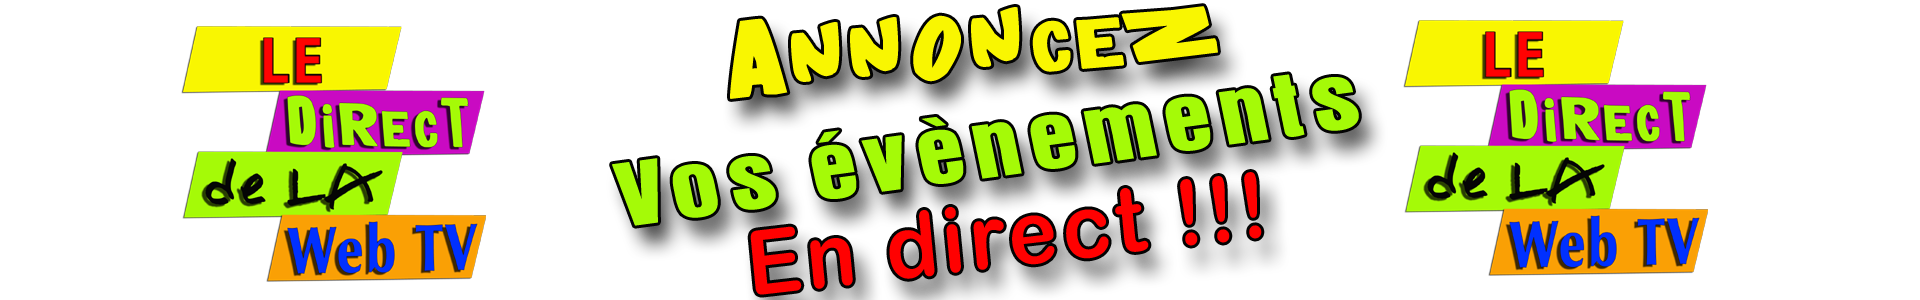 Banniere le direct de la webtv 1920x300 pour site02 copie